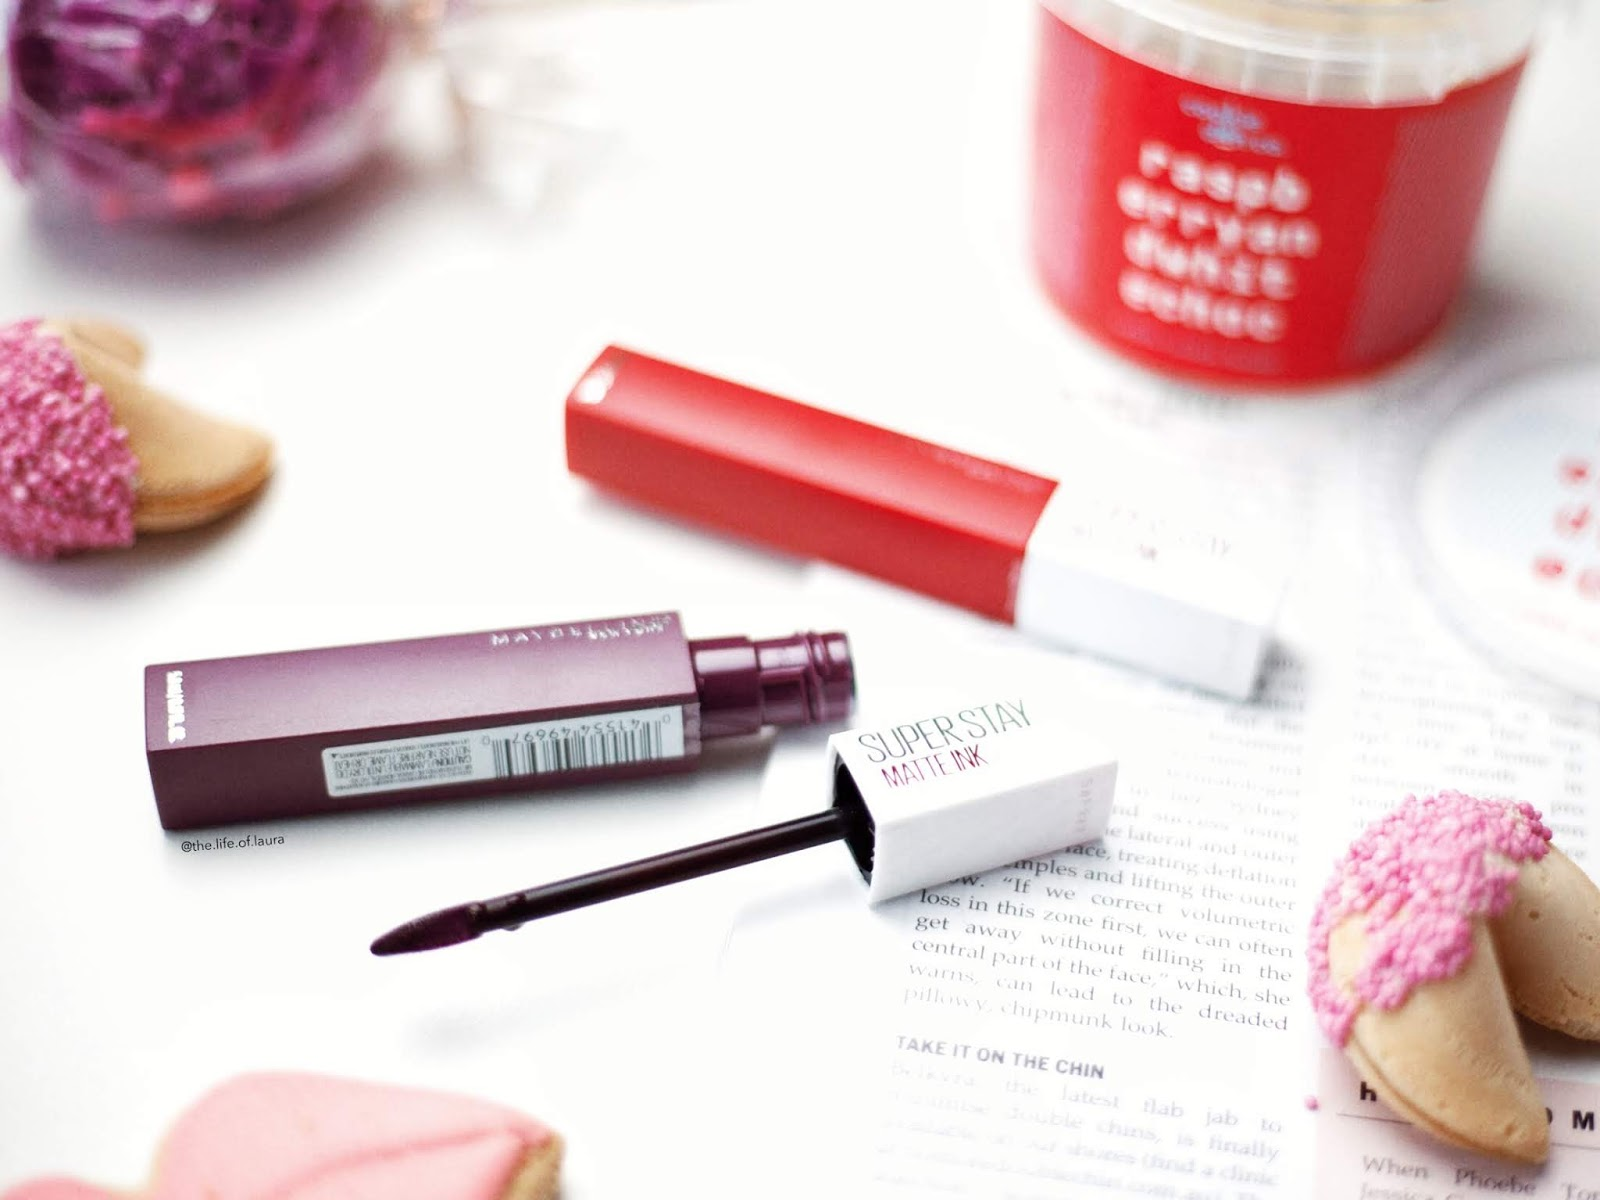 The Life Of Laura Maybelline Super Stay Matte Ink